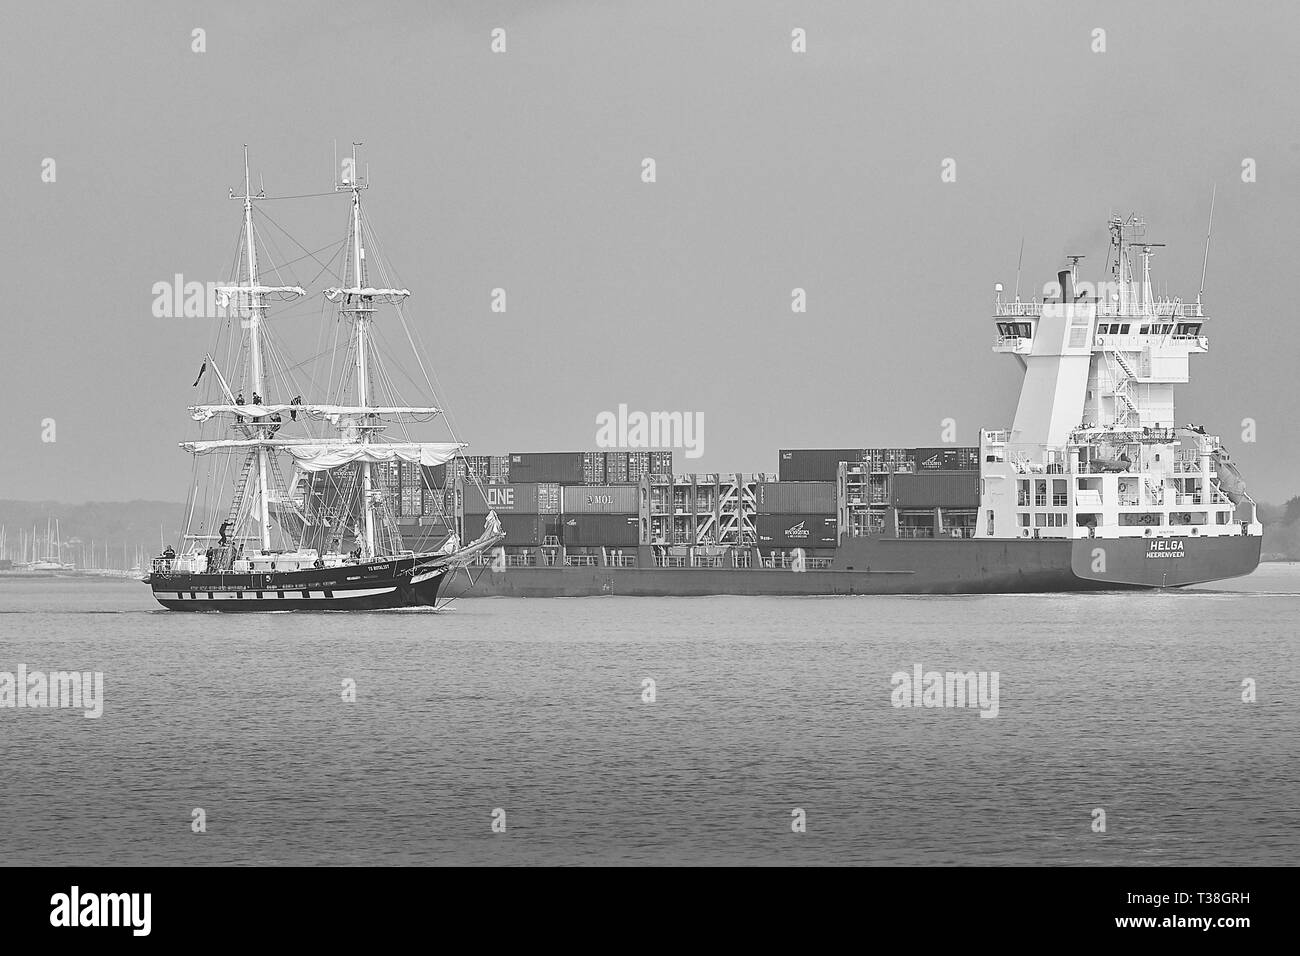 Black And White Photo Of The Training Ship, TS ROYALIST (Tall Ship), Departing The Port Of Southampton, Passes The Inbound Container Ship, HELGA. - Stock Image